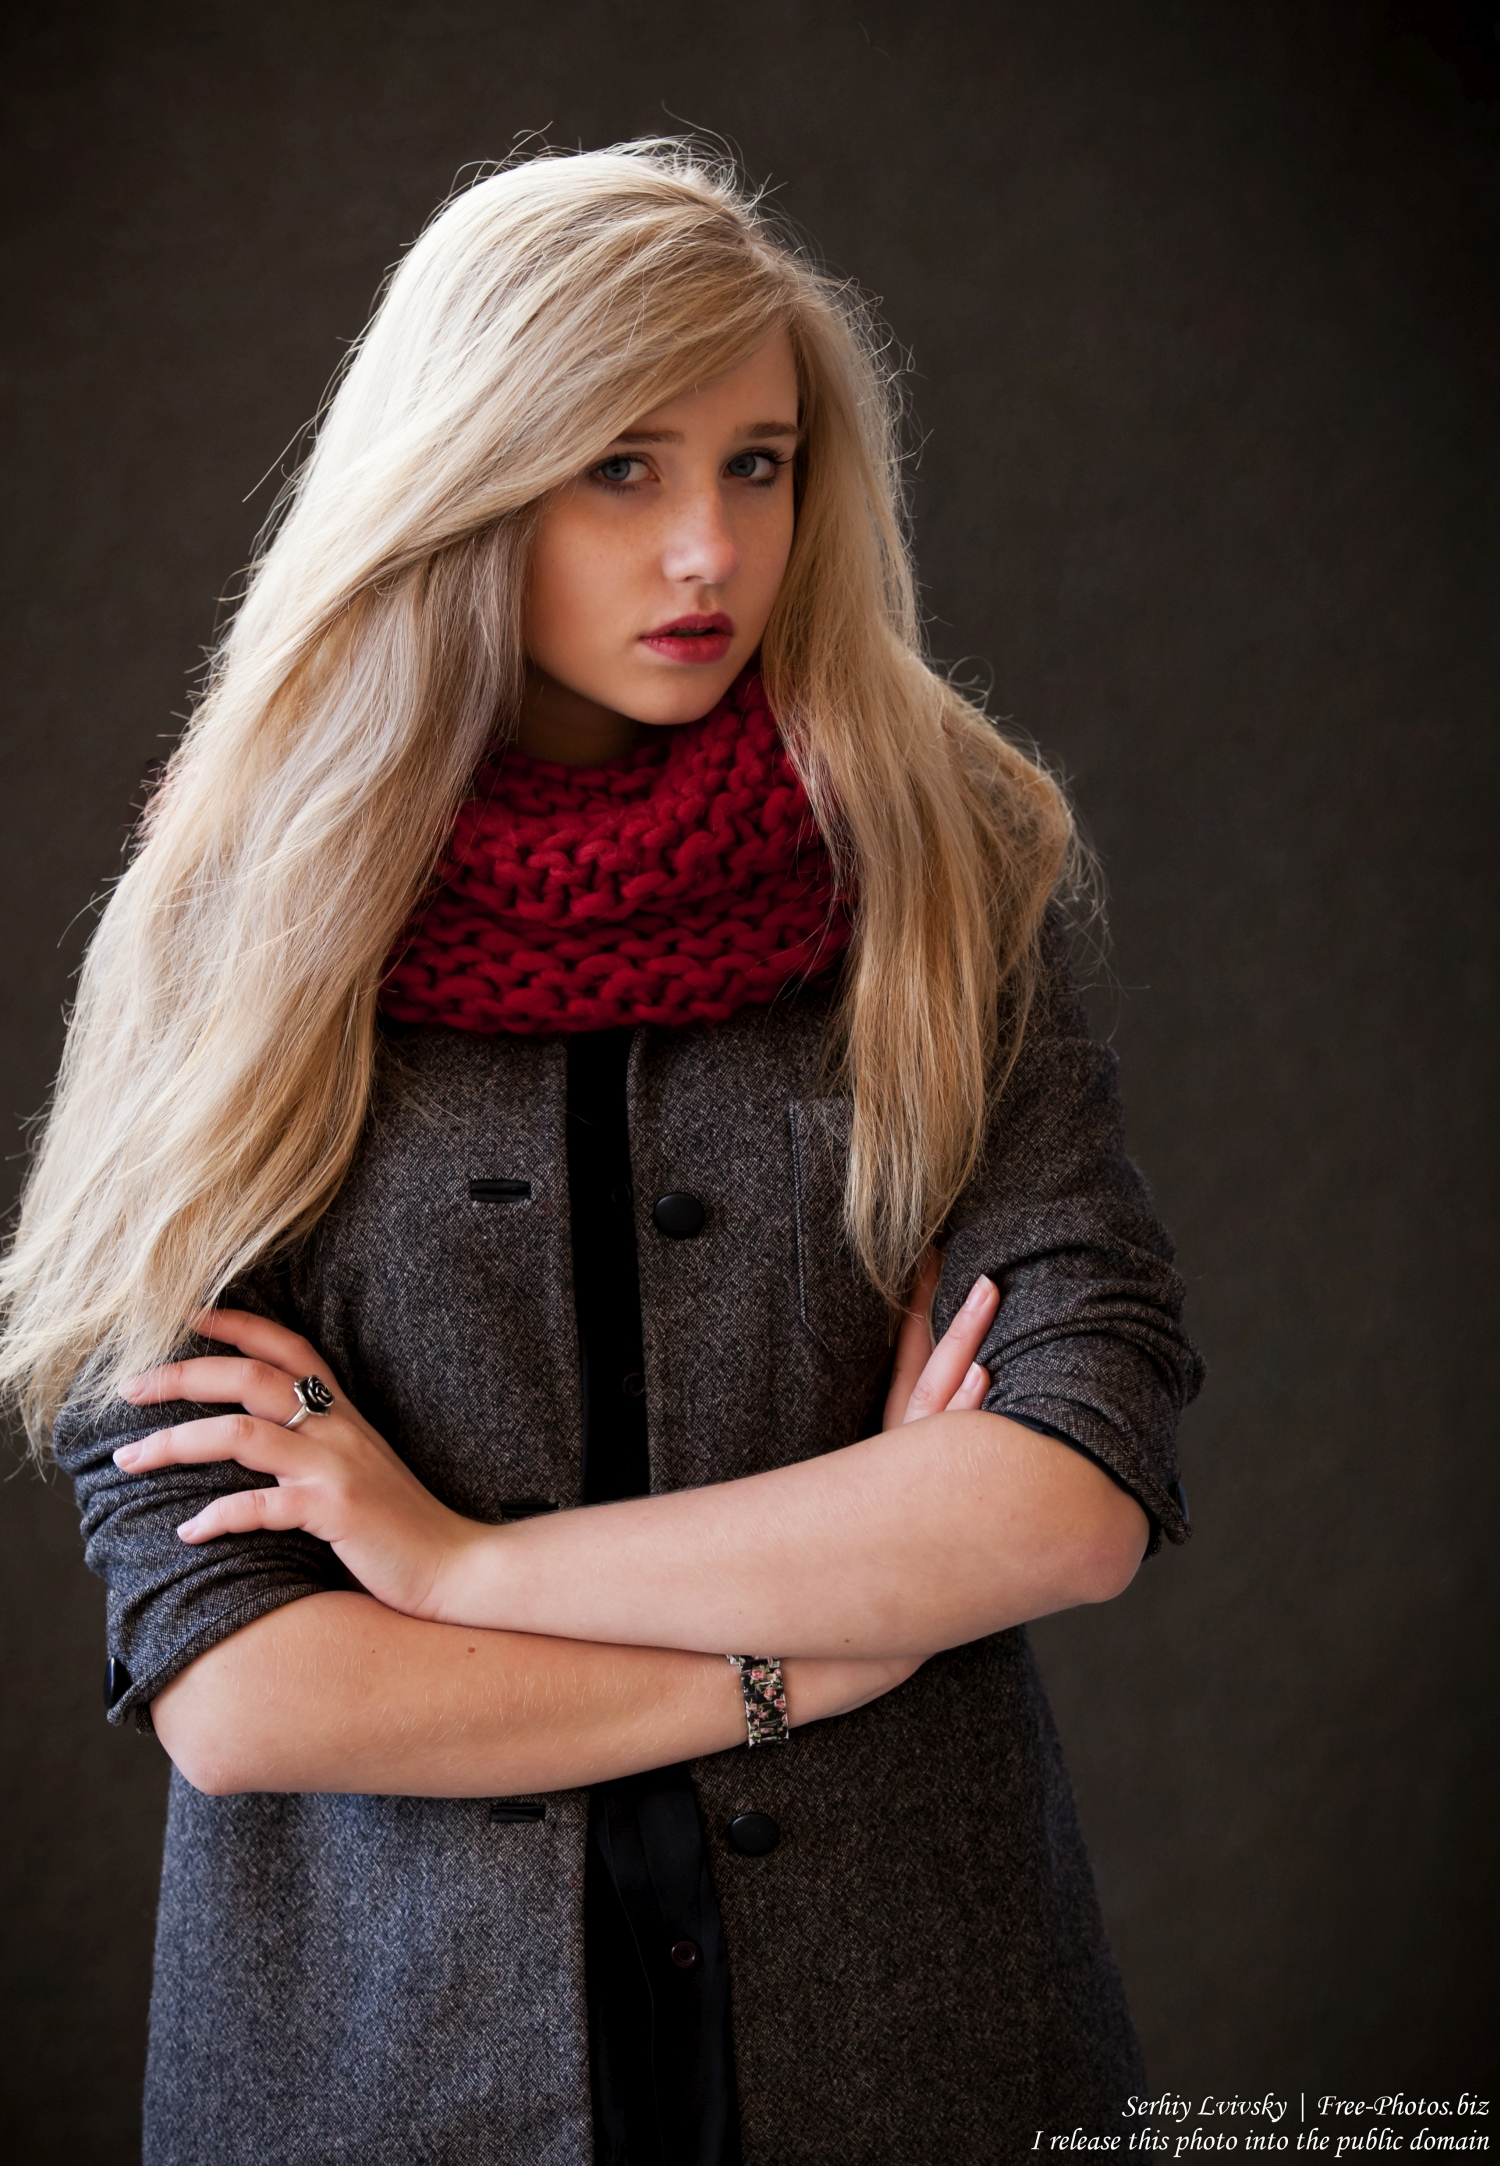 A seventeen-year-old natural blond girl with blue eyes by serhiy lvivsky